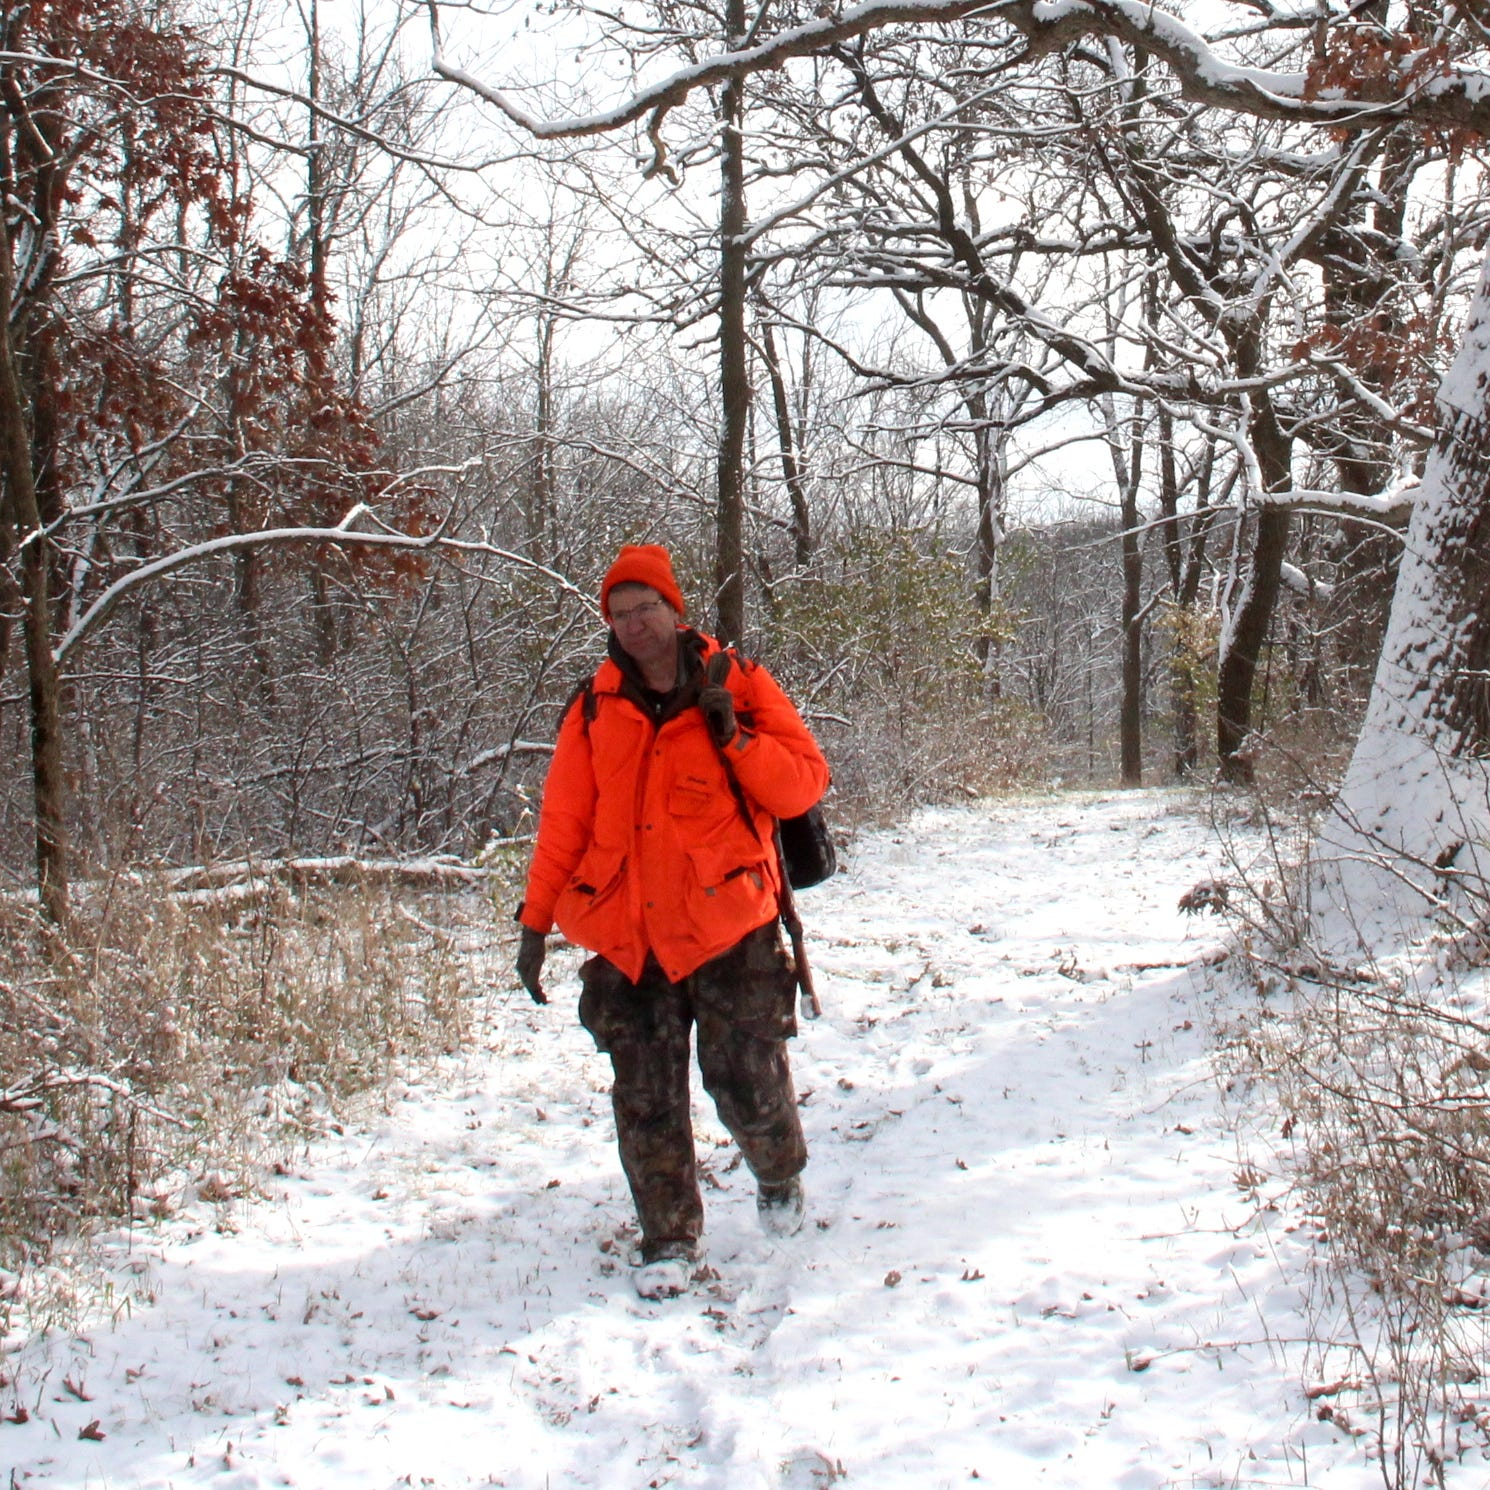 Smith: Sportsmen favor license fee increases to support programs. The state ought to listen.